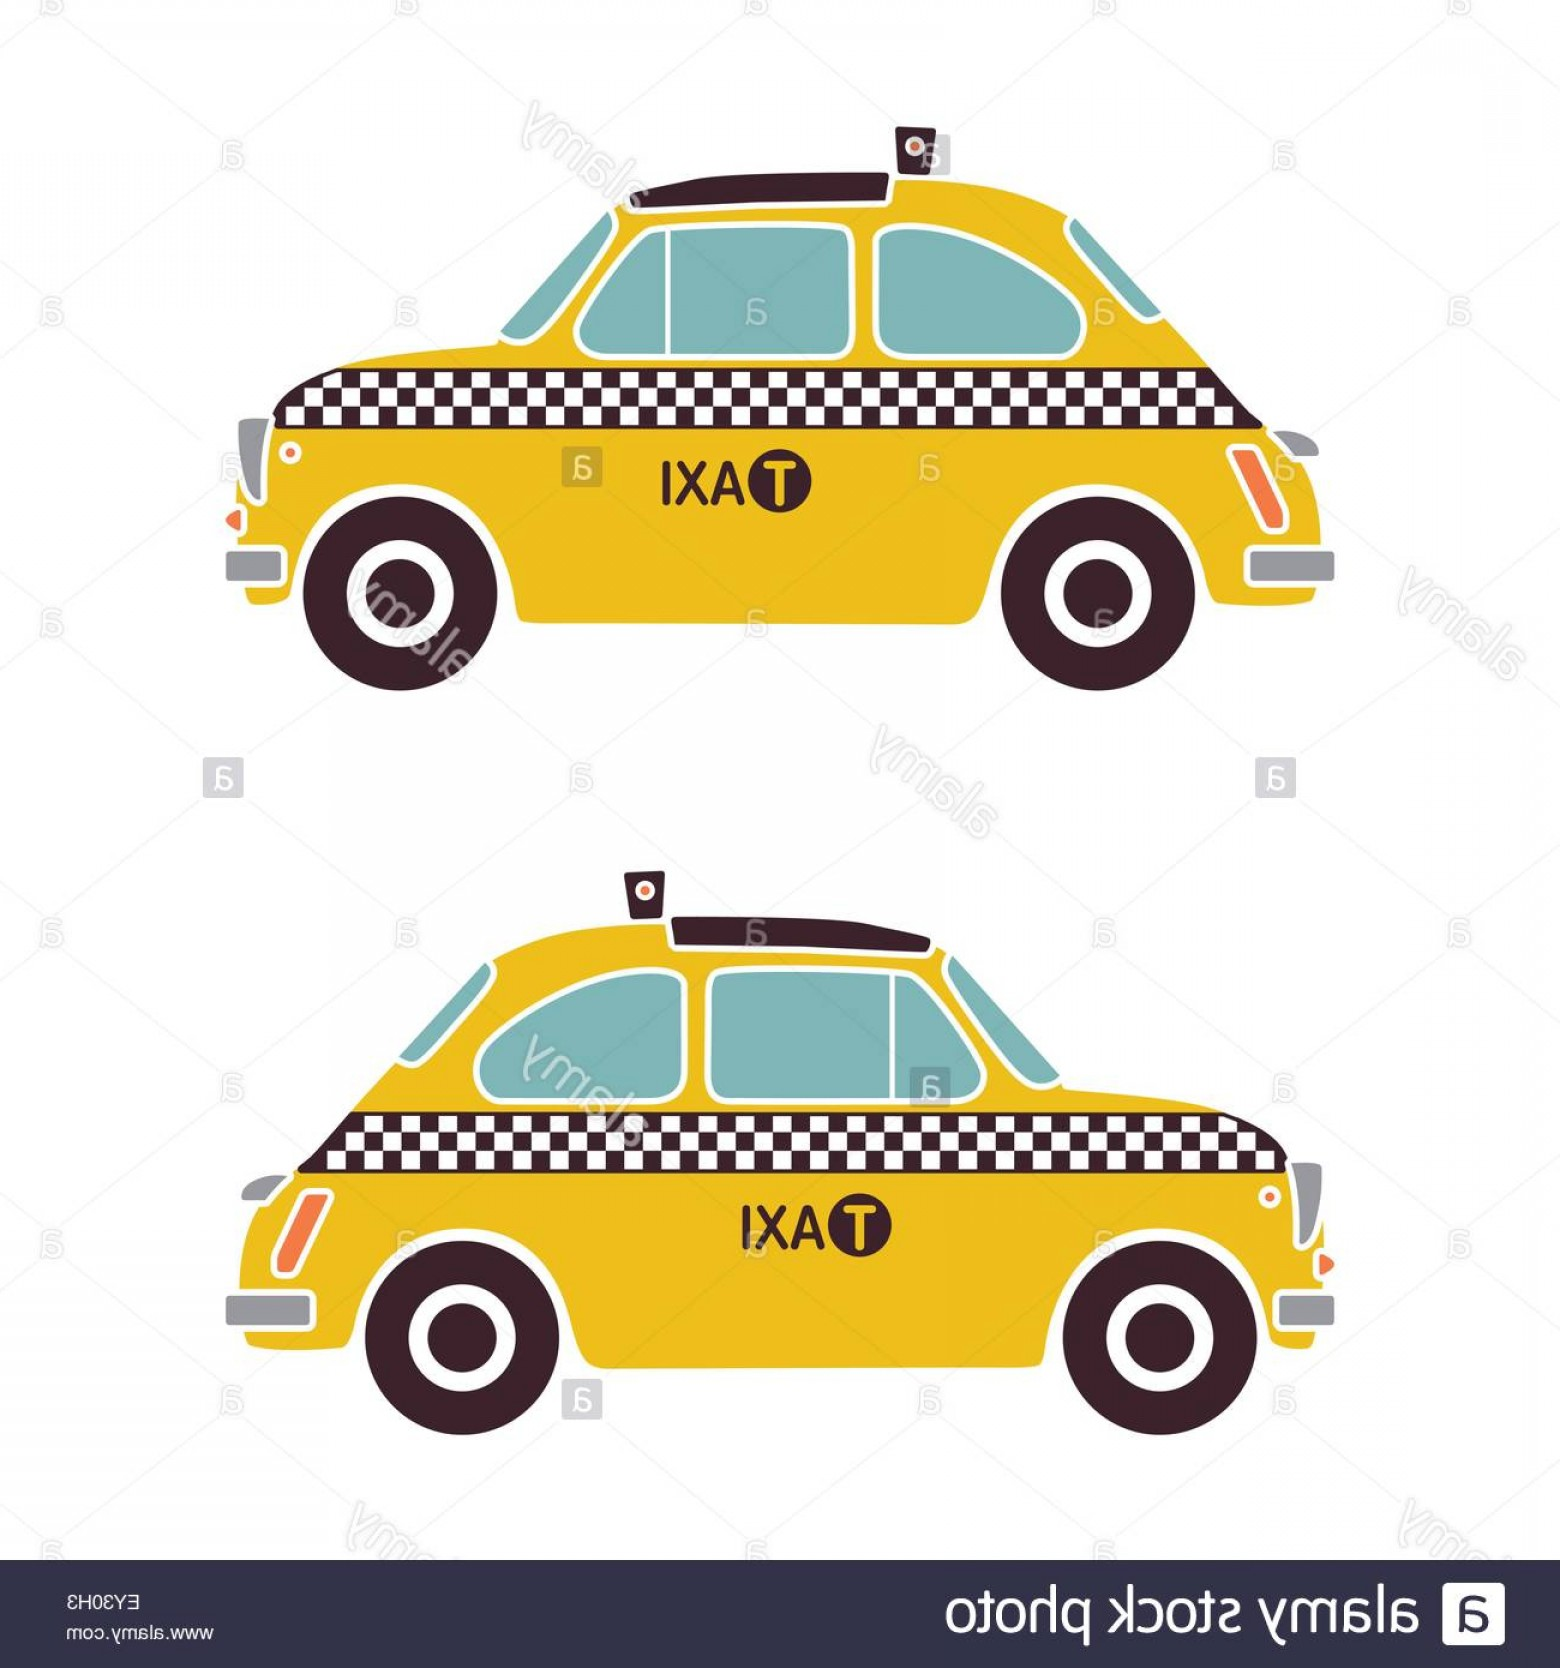 New York Taxi Cab Vector: Stock Photo Old Italian Car As New York Yellow Cab